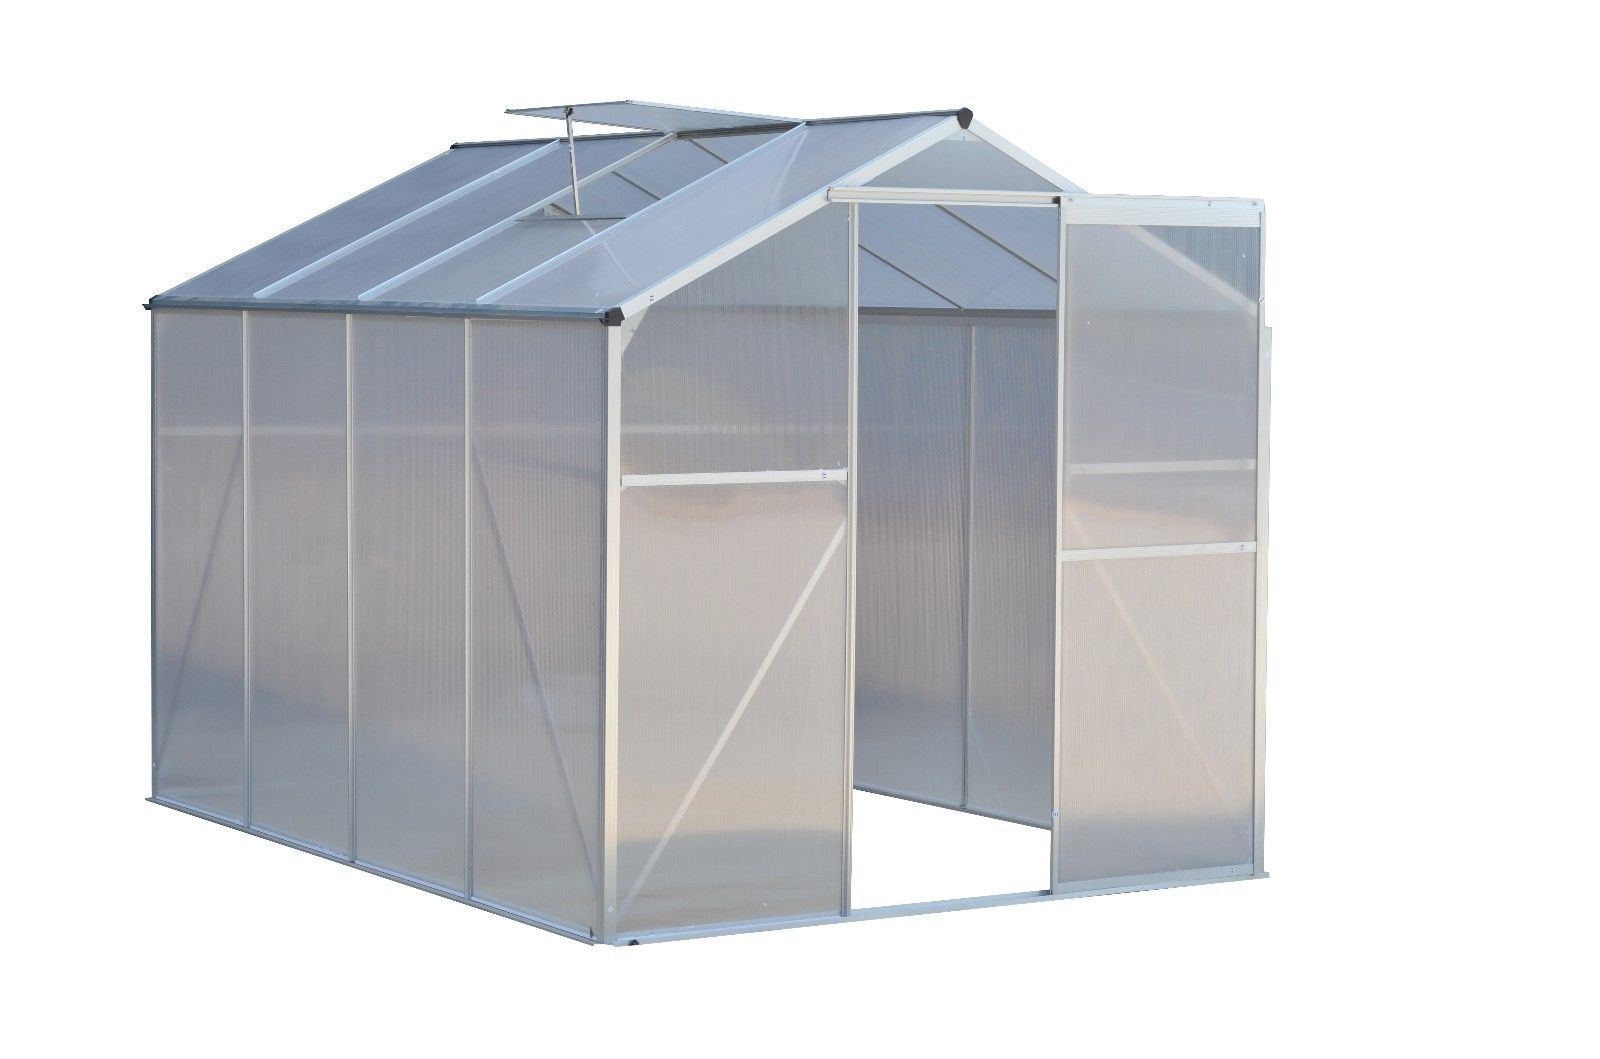 Costway 8.2x6.2ft Walk-in Garden Greenhouse Heavy Duty Polycarbonate Roof Aluminum Frame by Costway